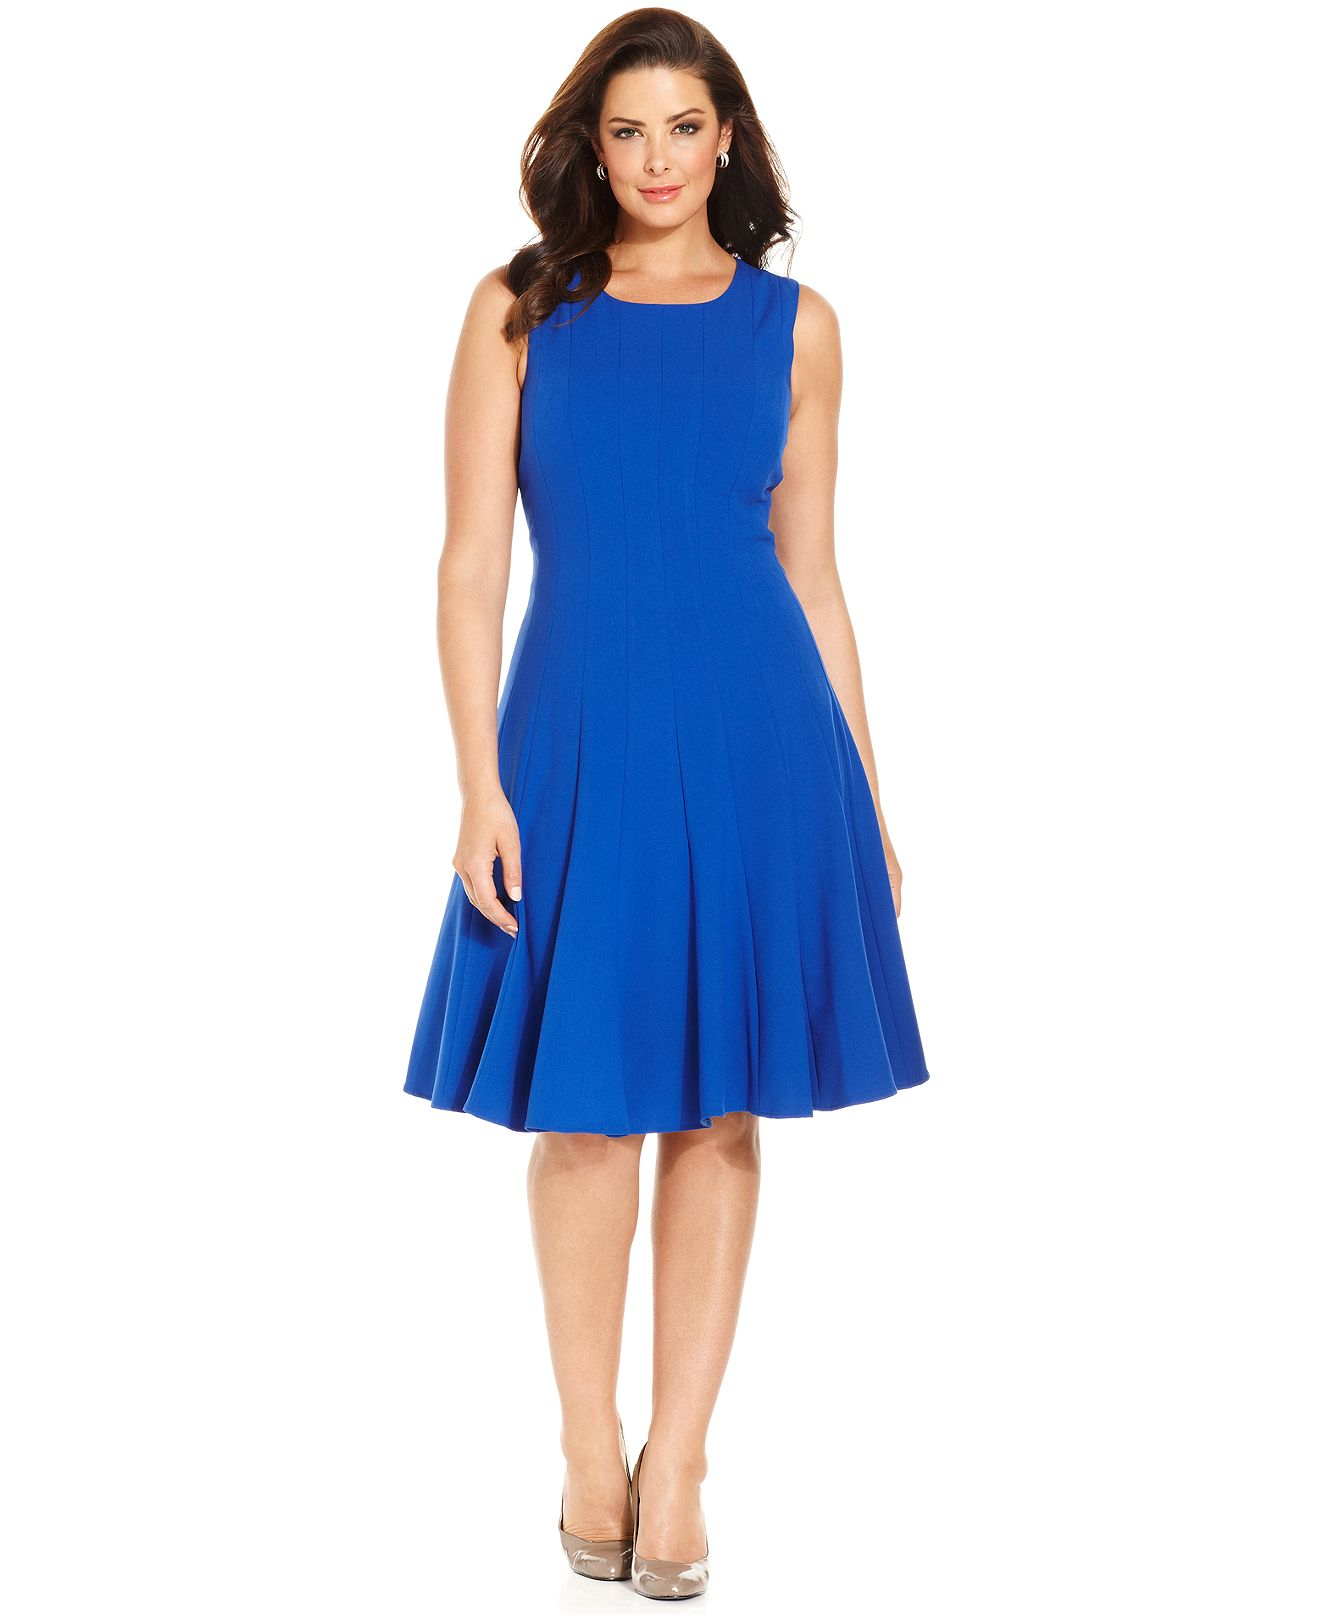 Innovative JS Boutique Dress Collection  Dresses  Women  Macy39s